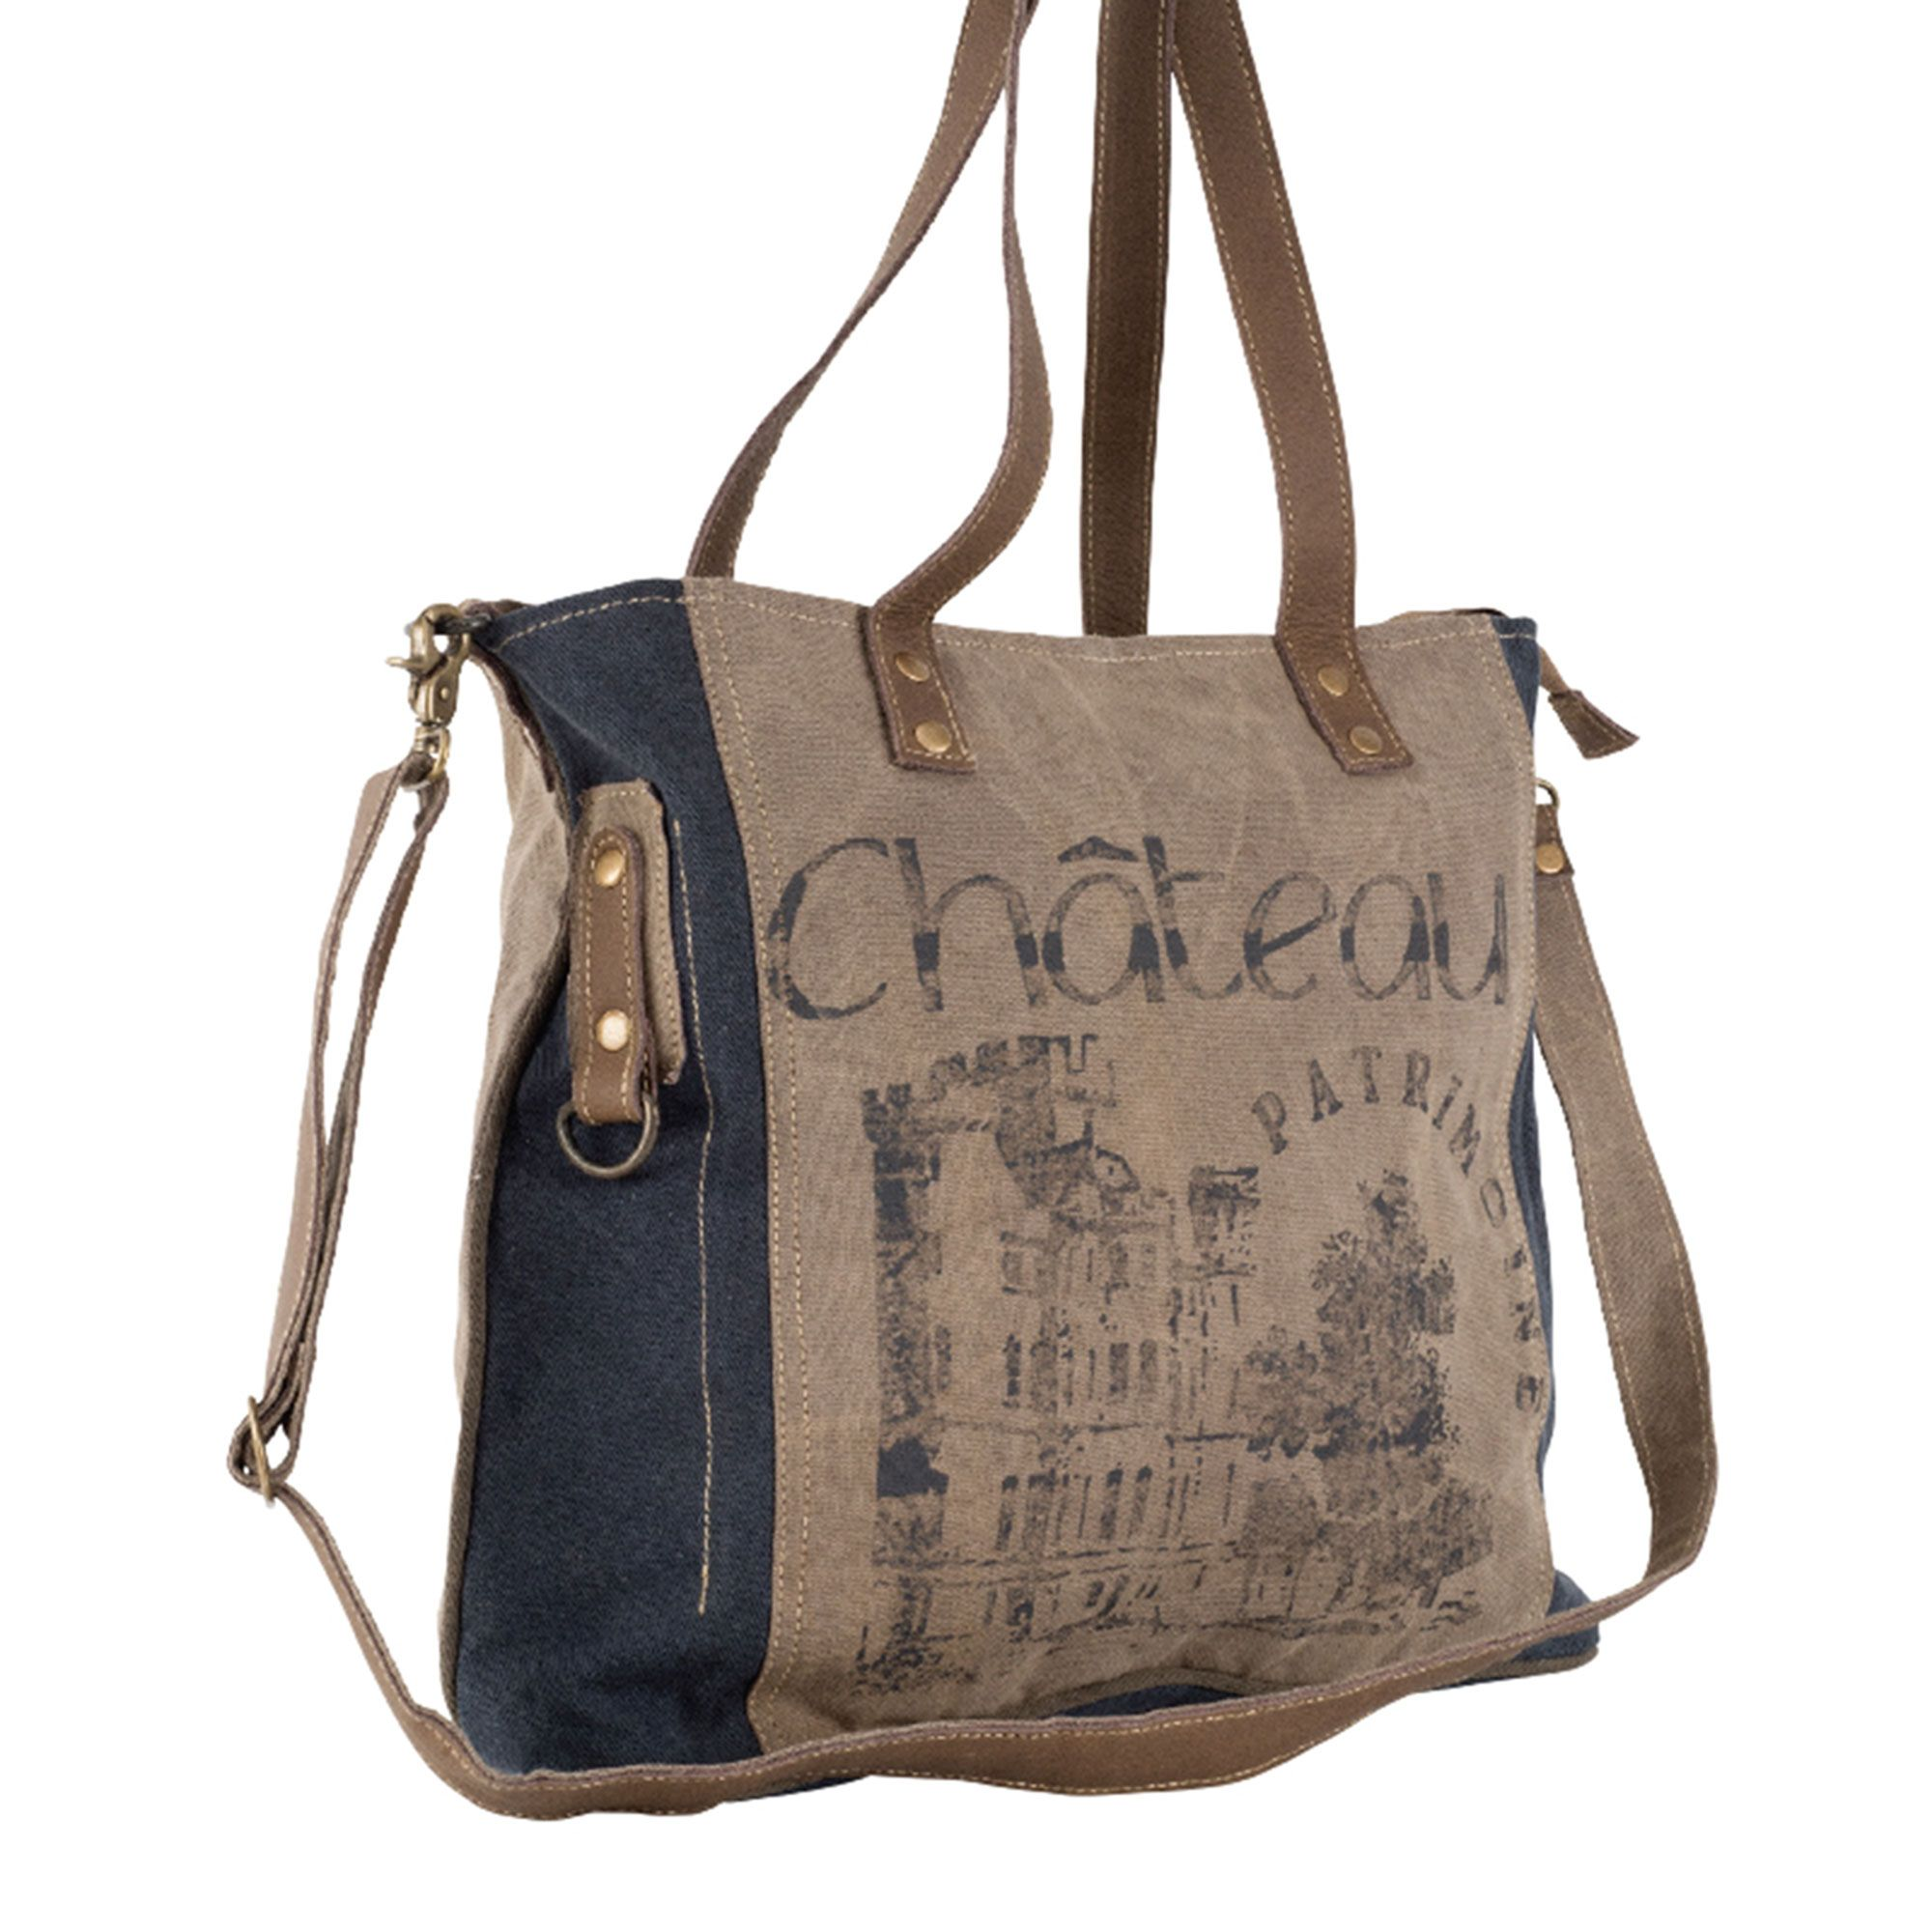 e23ca226993b Chateau Large Leather & Canvas Shoulder Tote with Strap by Clea Ray